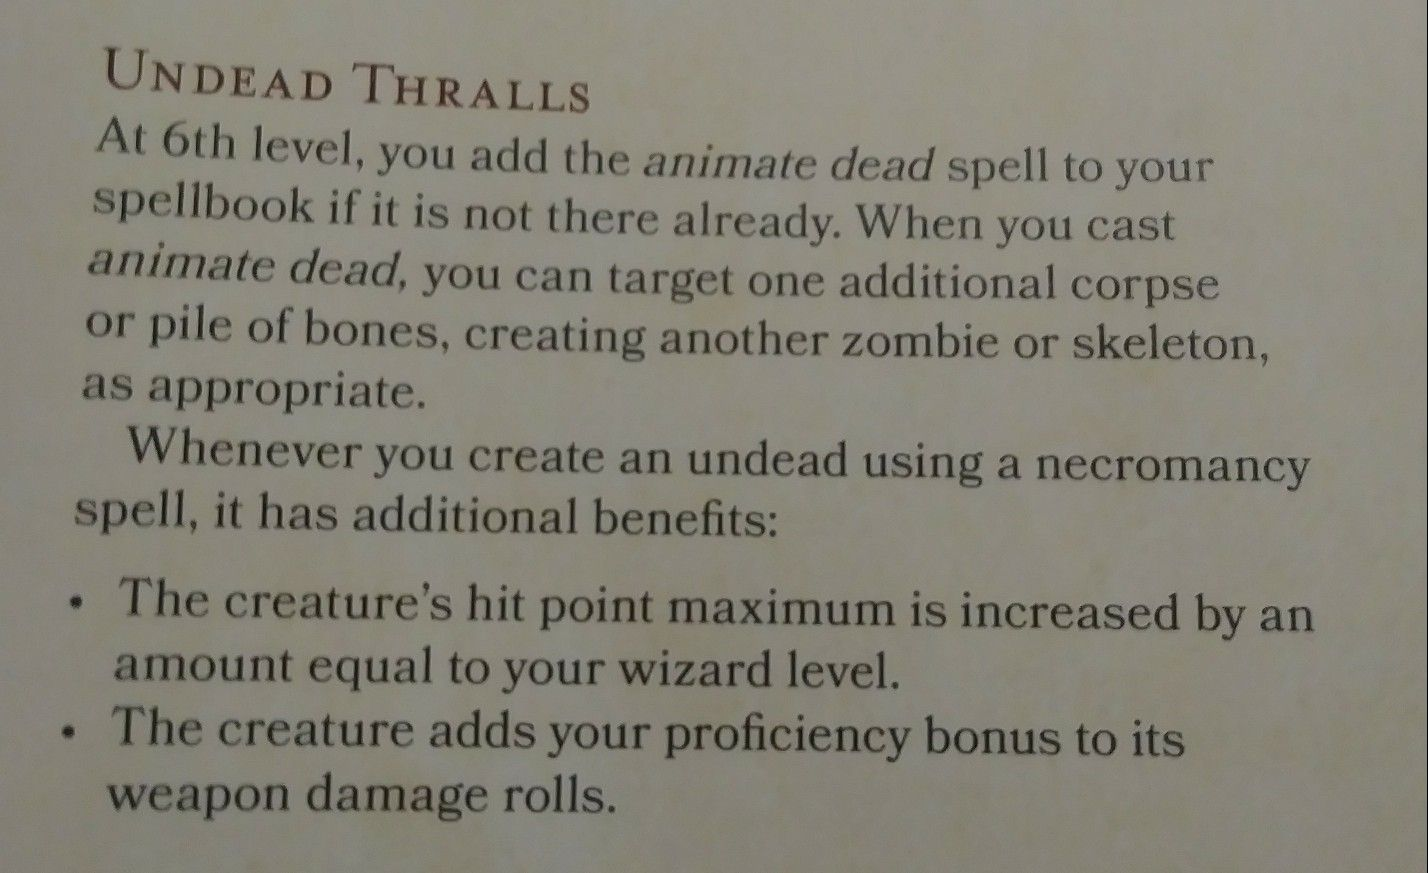 Undead Thralls D&D 5e school of Necromancy Arcane Tradition